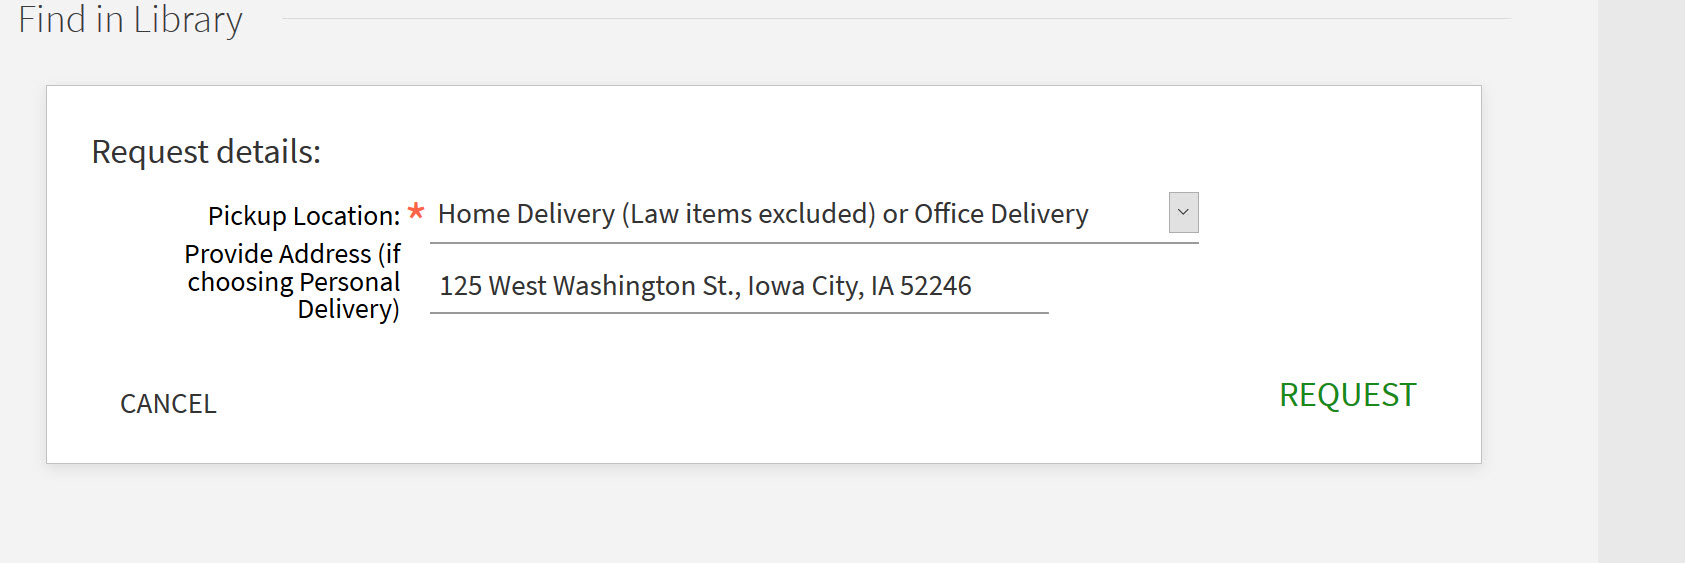 Illustration of shipping address in book delivery request form